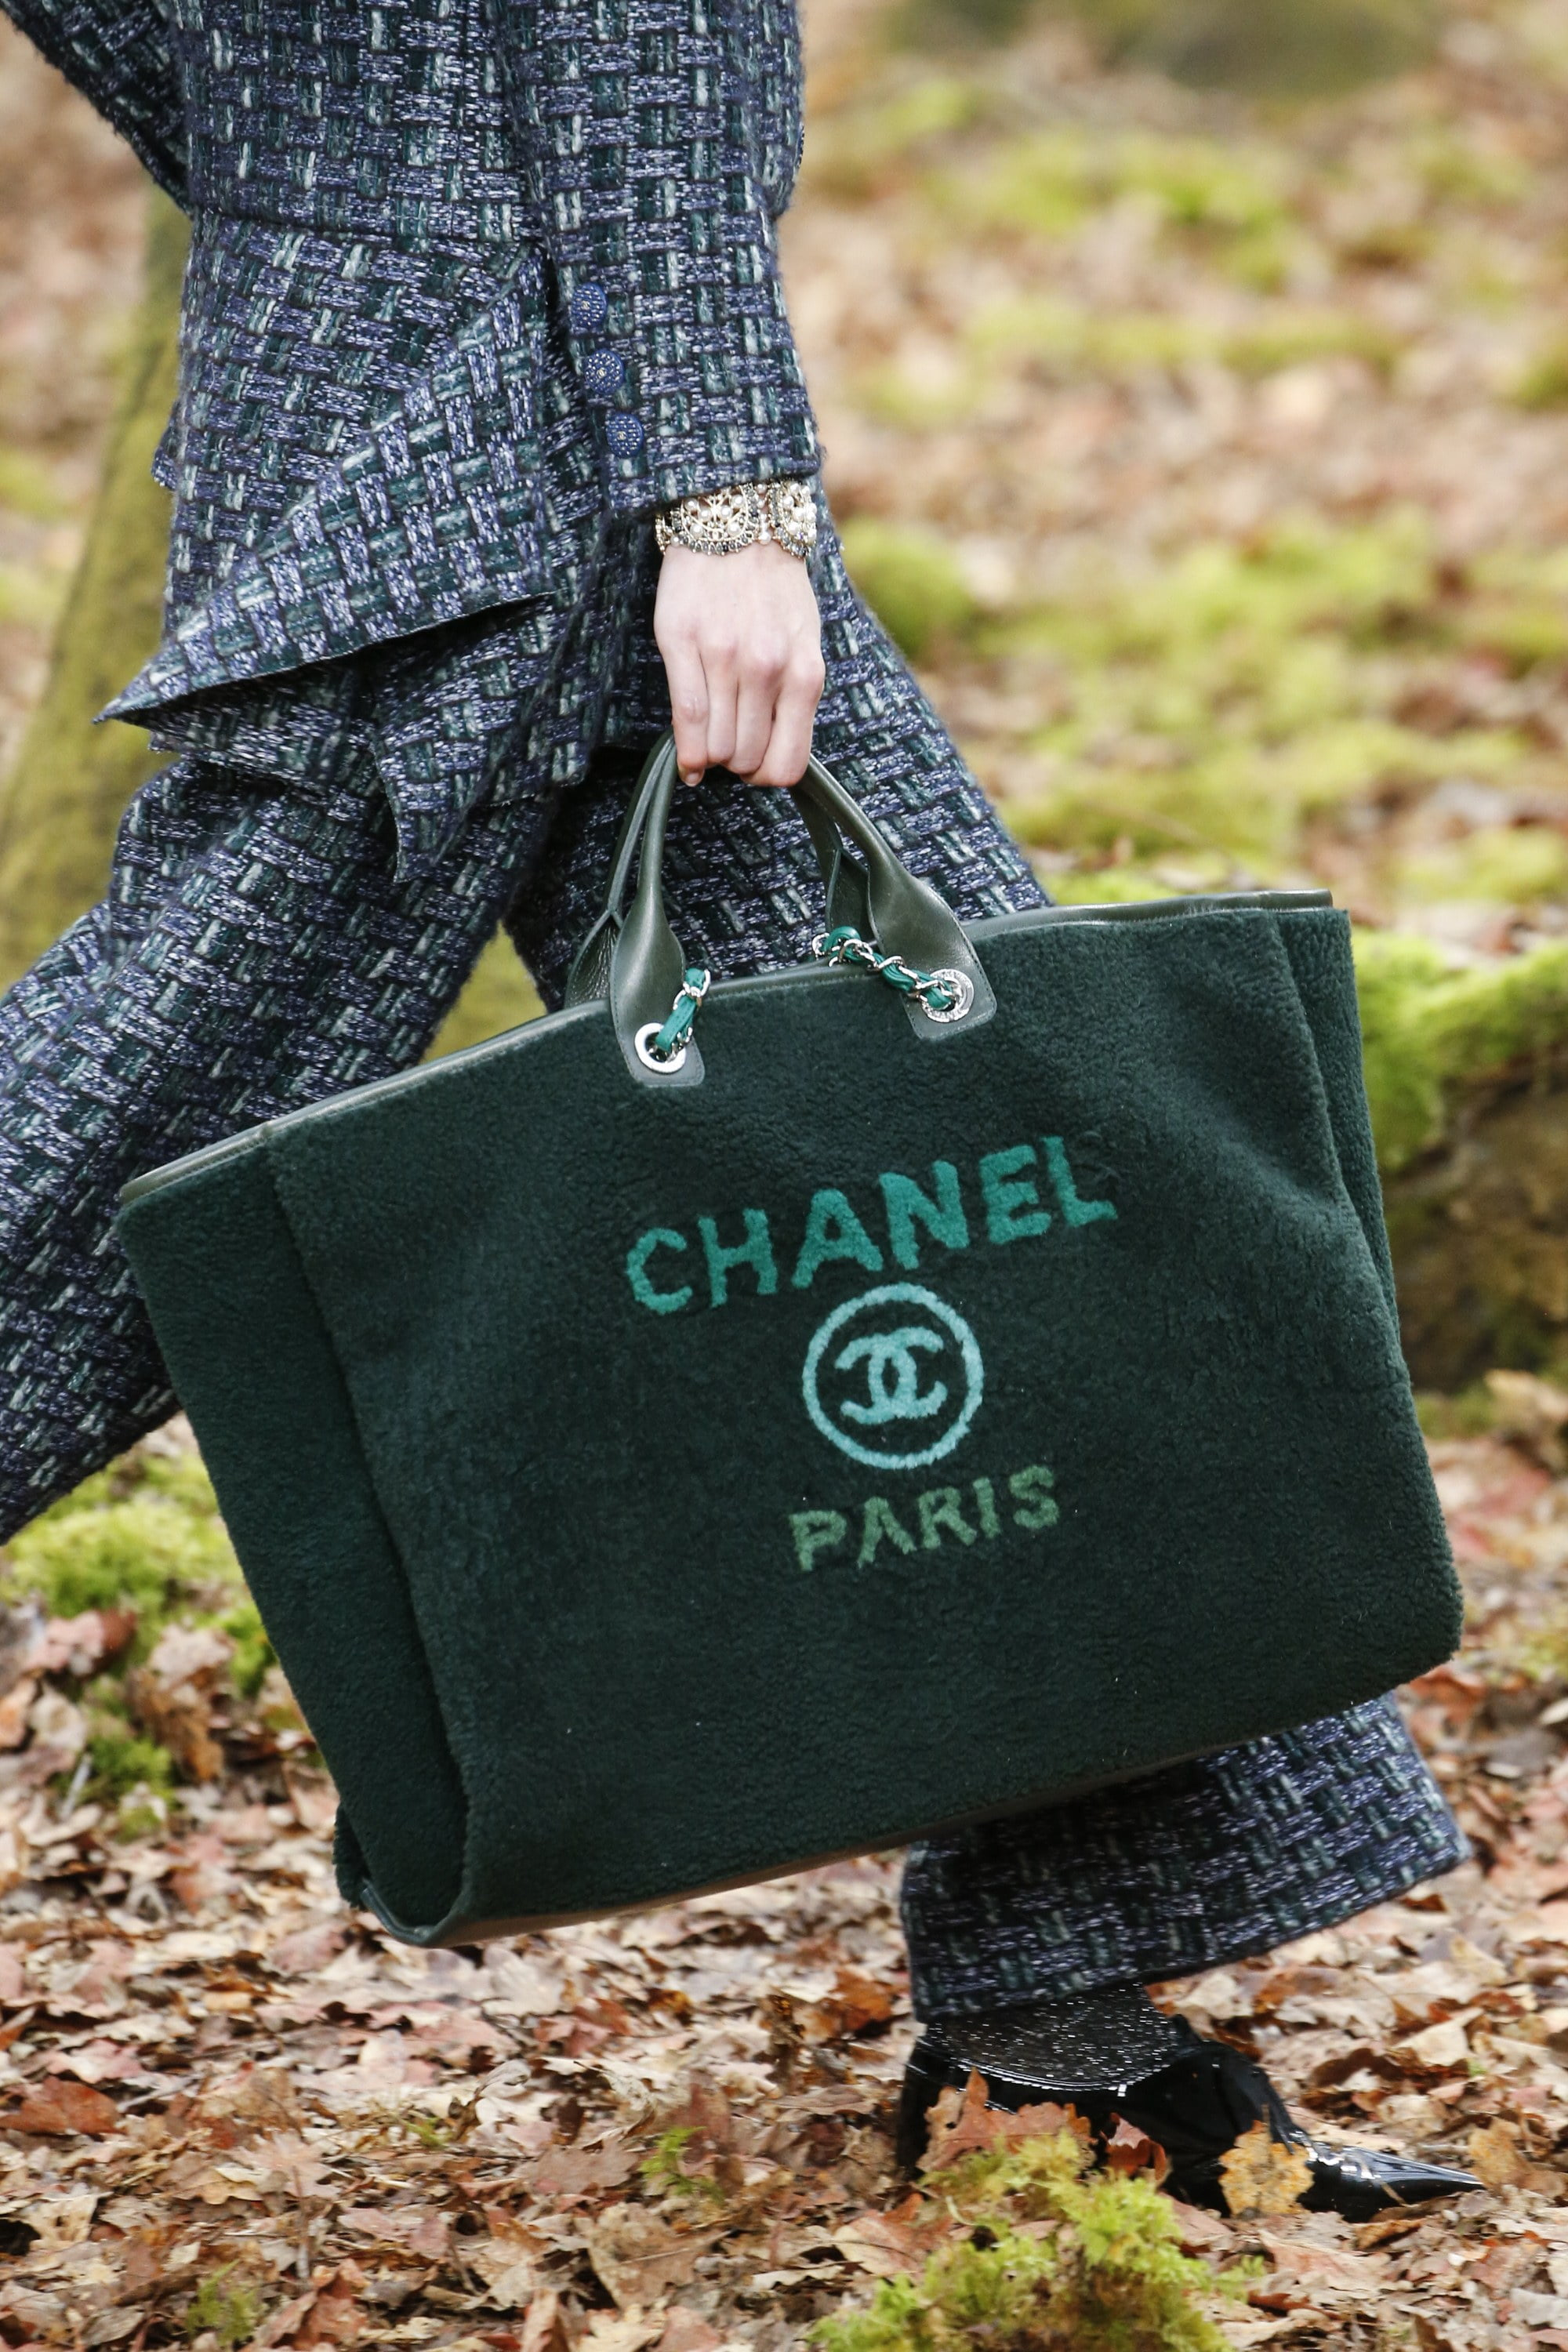 Chanel S Fall 2018 Show At Paris Fashion Week Took Us For A Walk In The Woods Grand Palais Of Course Autumnal Colors Leaf Motifs Abounded